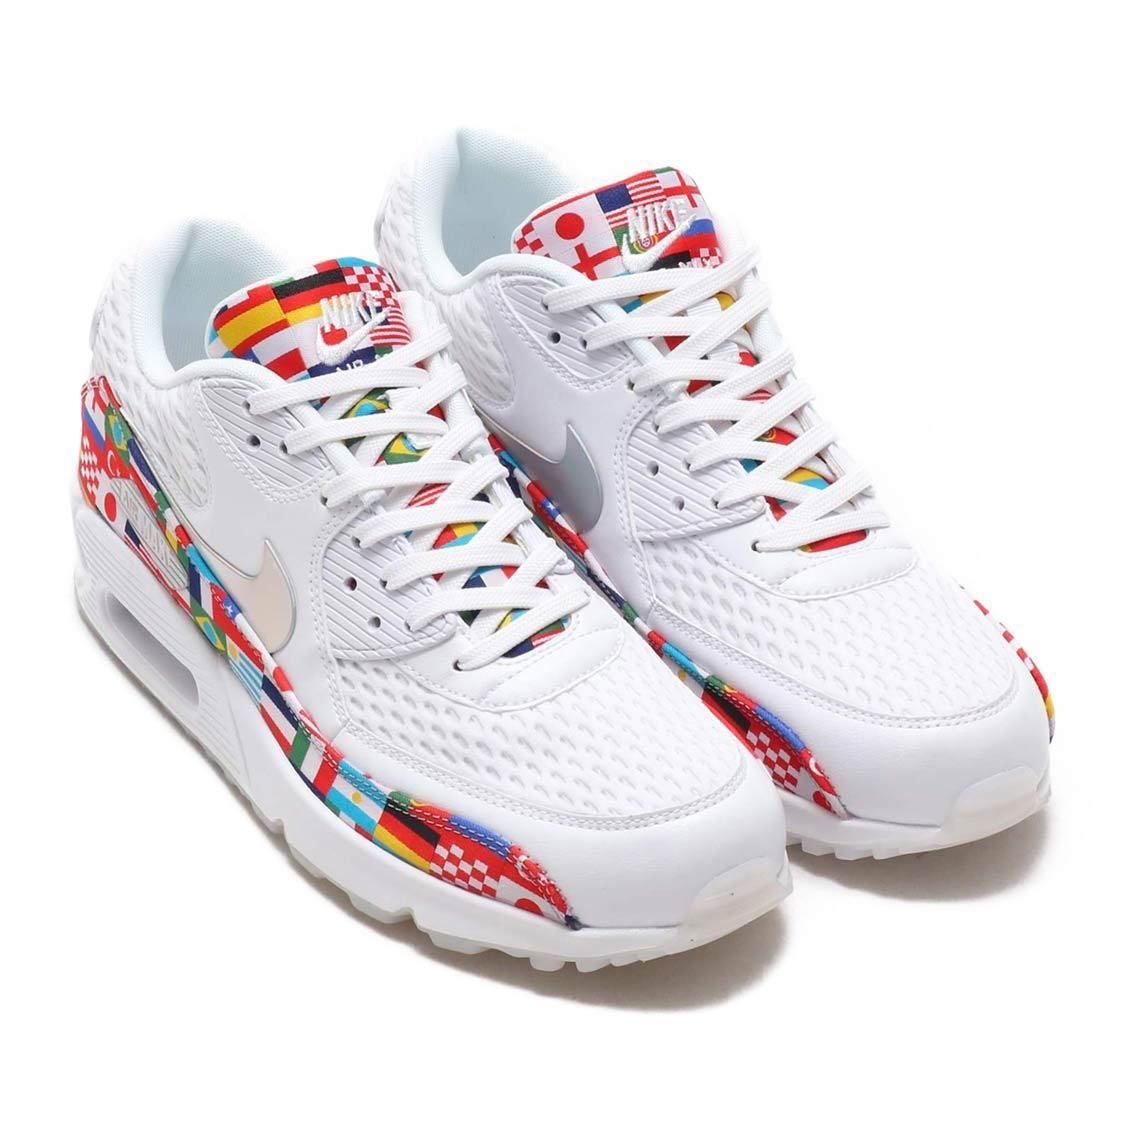 newest 1f371 ad213 2018 Nike Air Max 90 NIC QS SZ 10.5 One World Cup International Flag  AO5119-100 Discount Price 179.99 Free Shipping Buy it Now